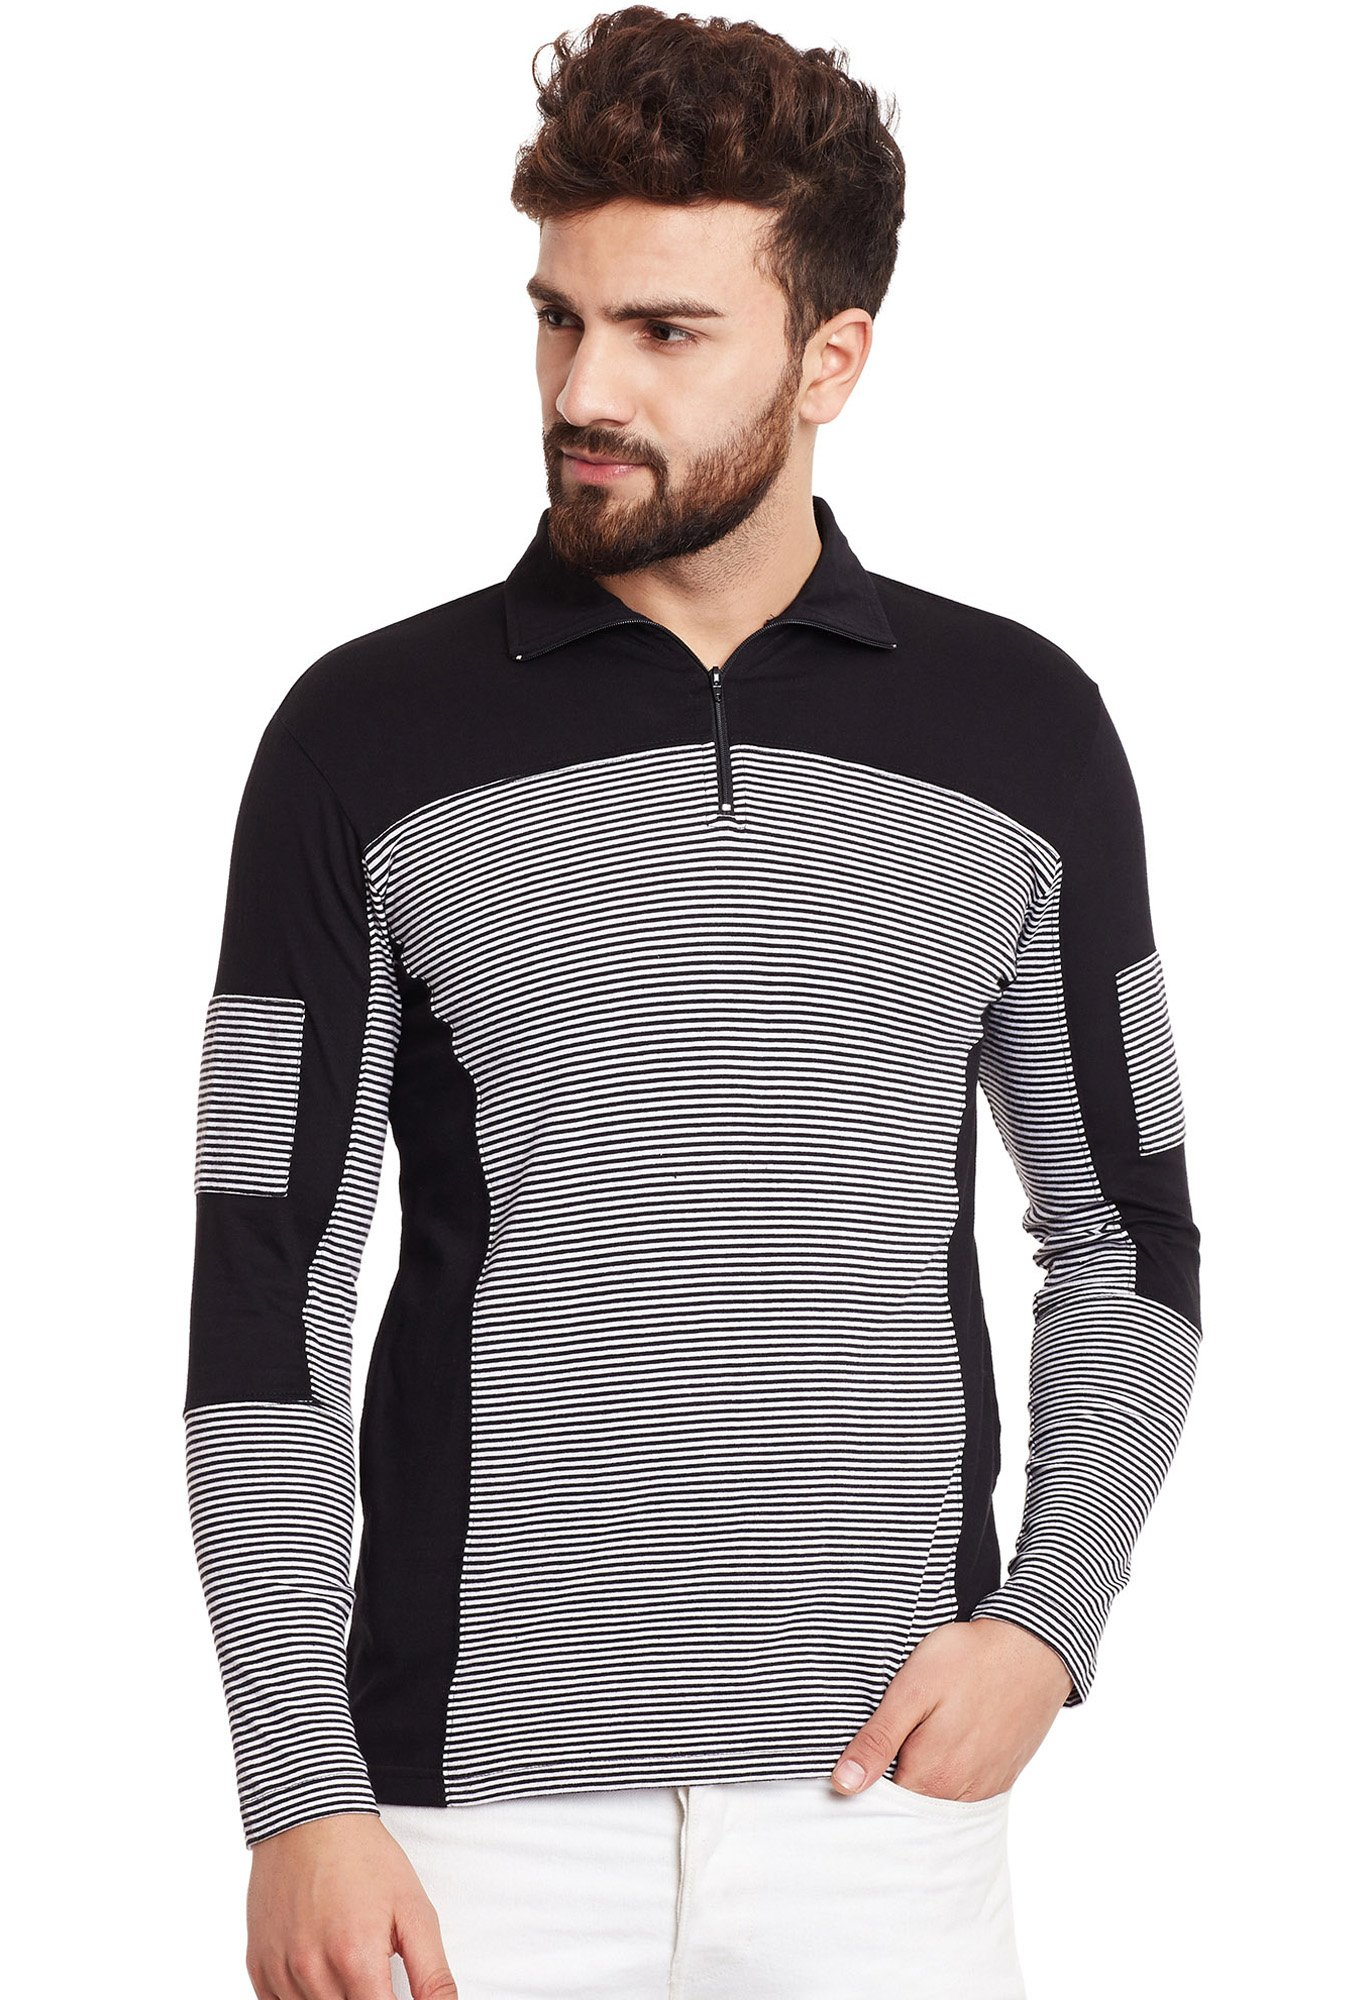 Hypernation Black Full Sleeves Regular Fit Striped T-Shirt